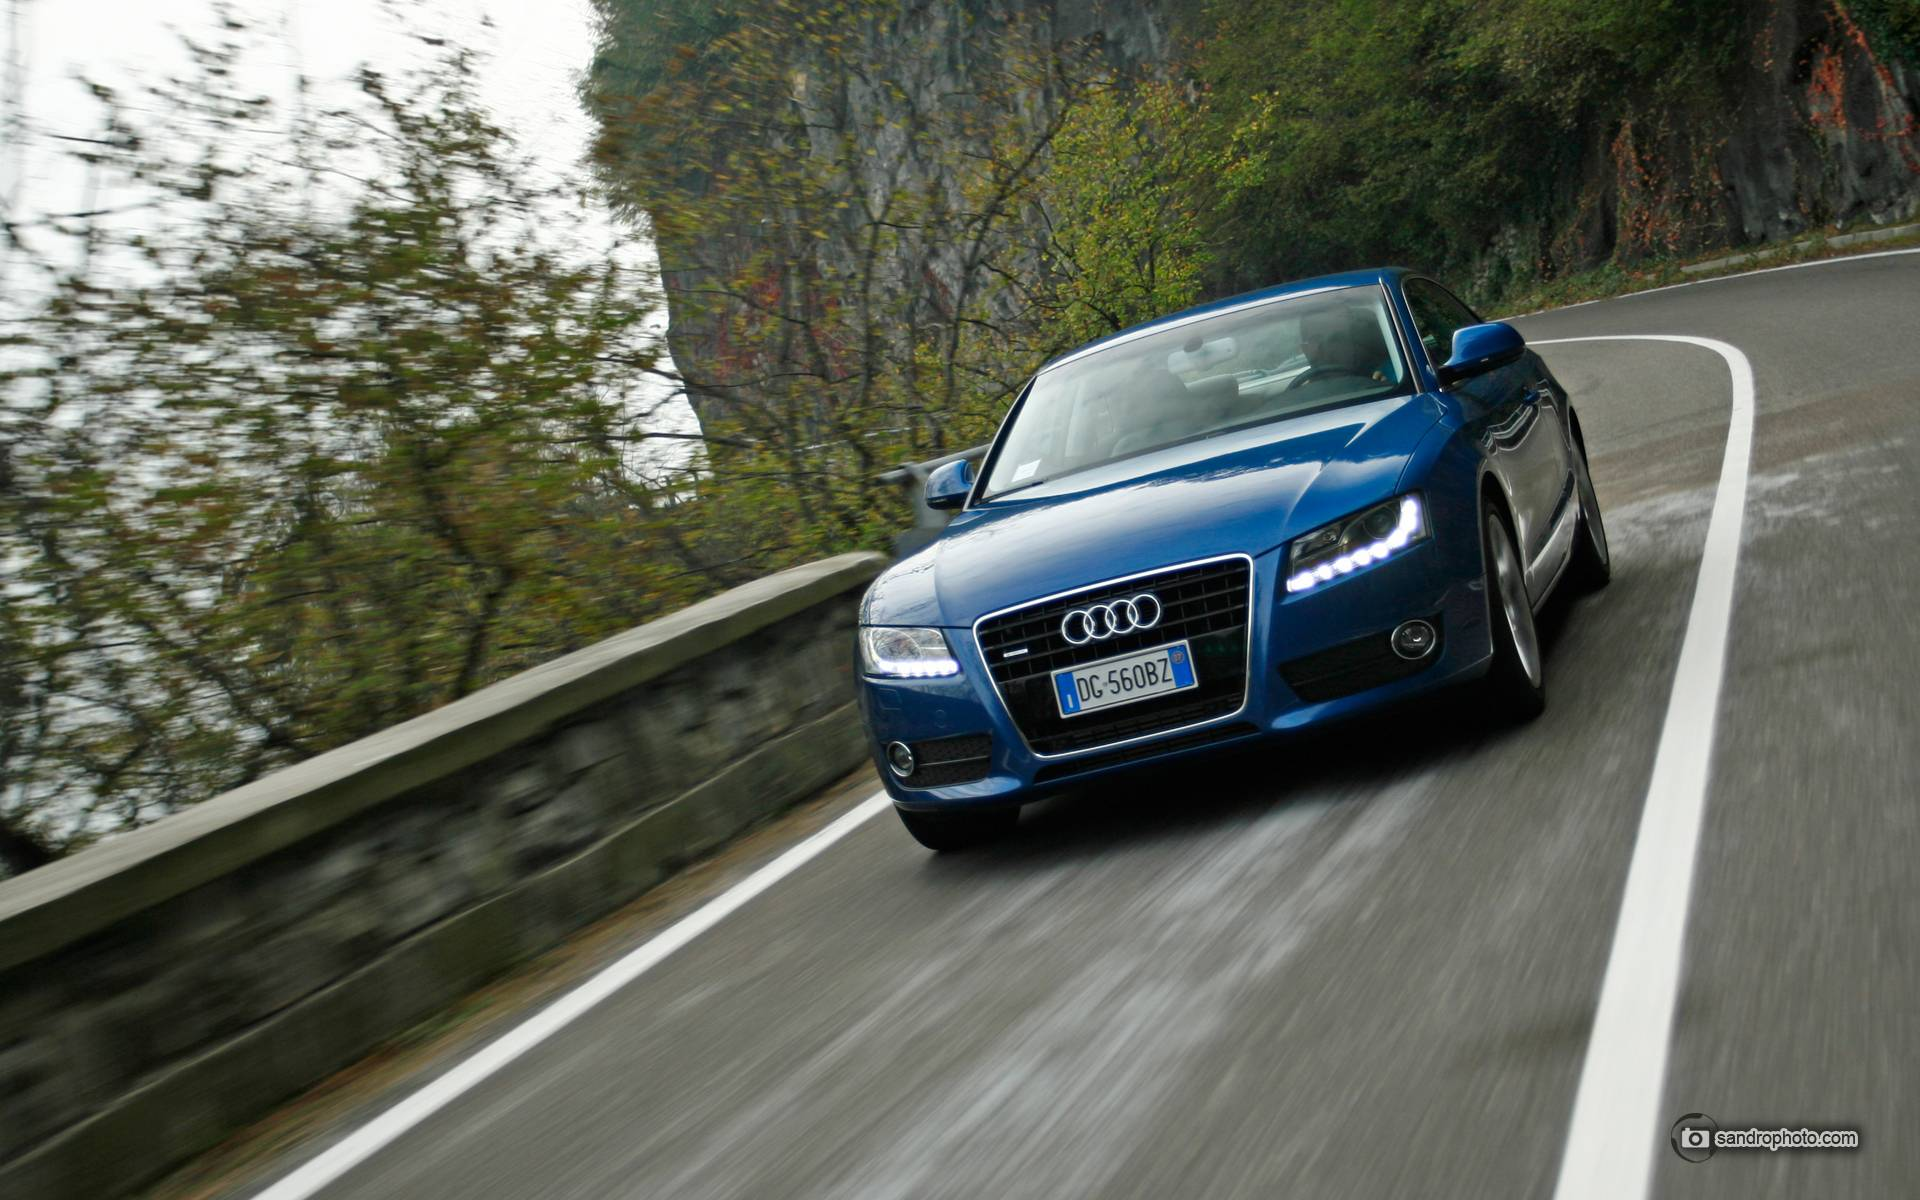 Audi A5 wallpapers 31641